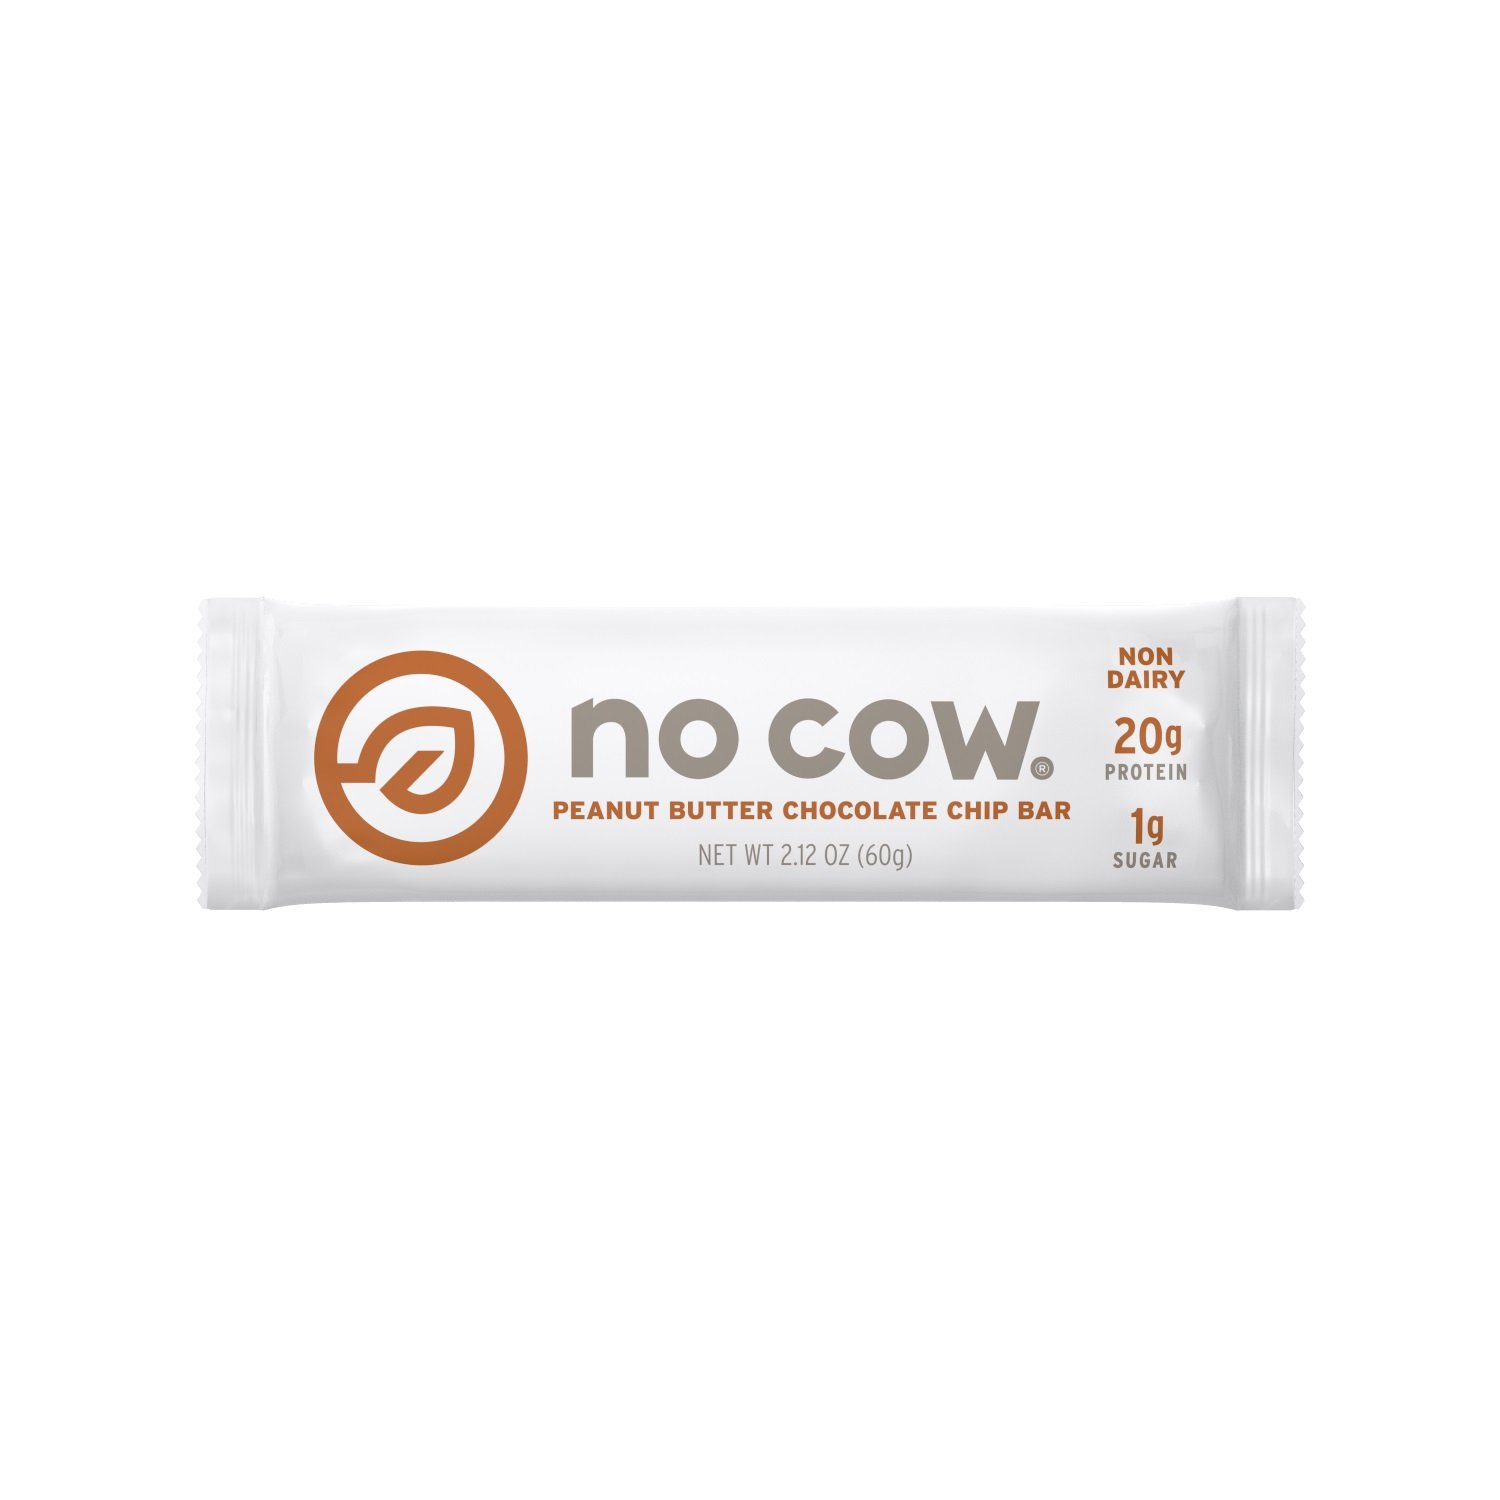 No Cow Protein Bar, Peanut Butter Chocolate Chip, 20g Plant Based Protein, Low Sugar, Dairy Free, Gluten Free, Vegan, High Fiber, Non-GMO, 12 Count